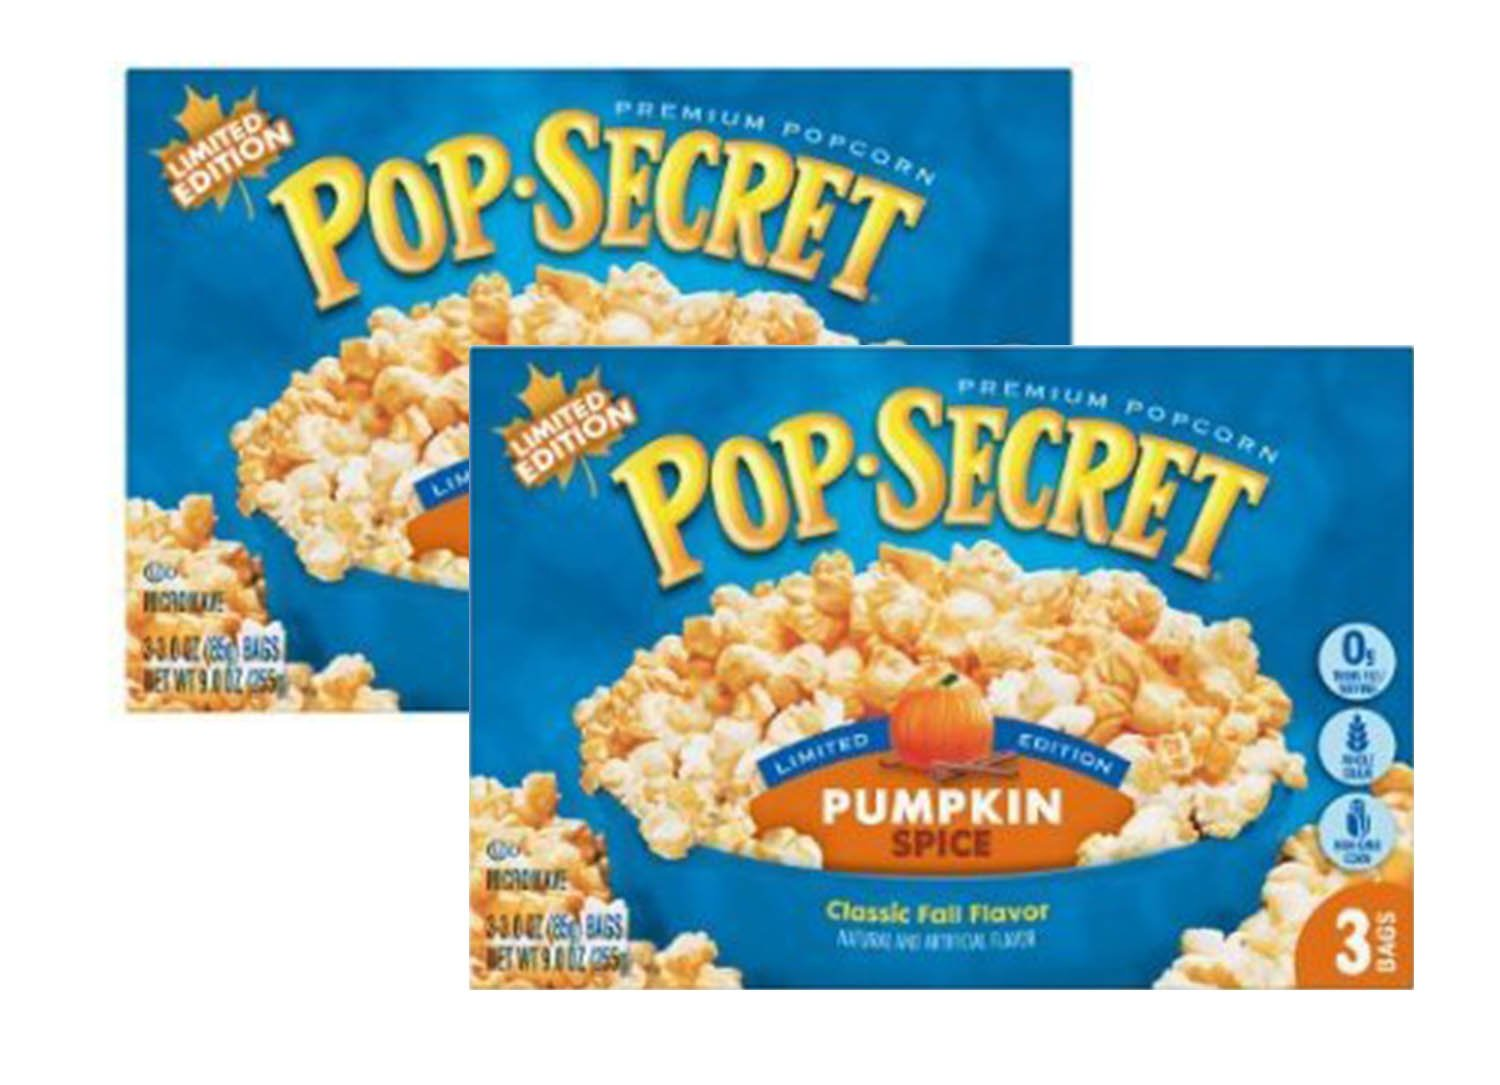 Pop Secret Pumpkin Spice Popcorn (2 pack) | Limited edition by Red35 Products